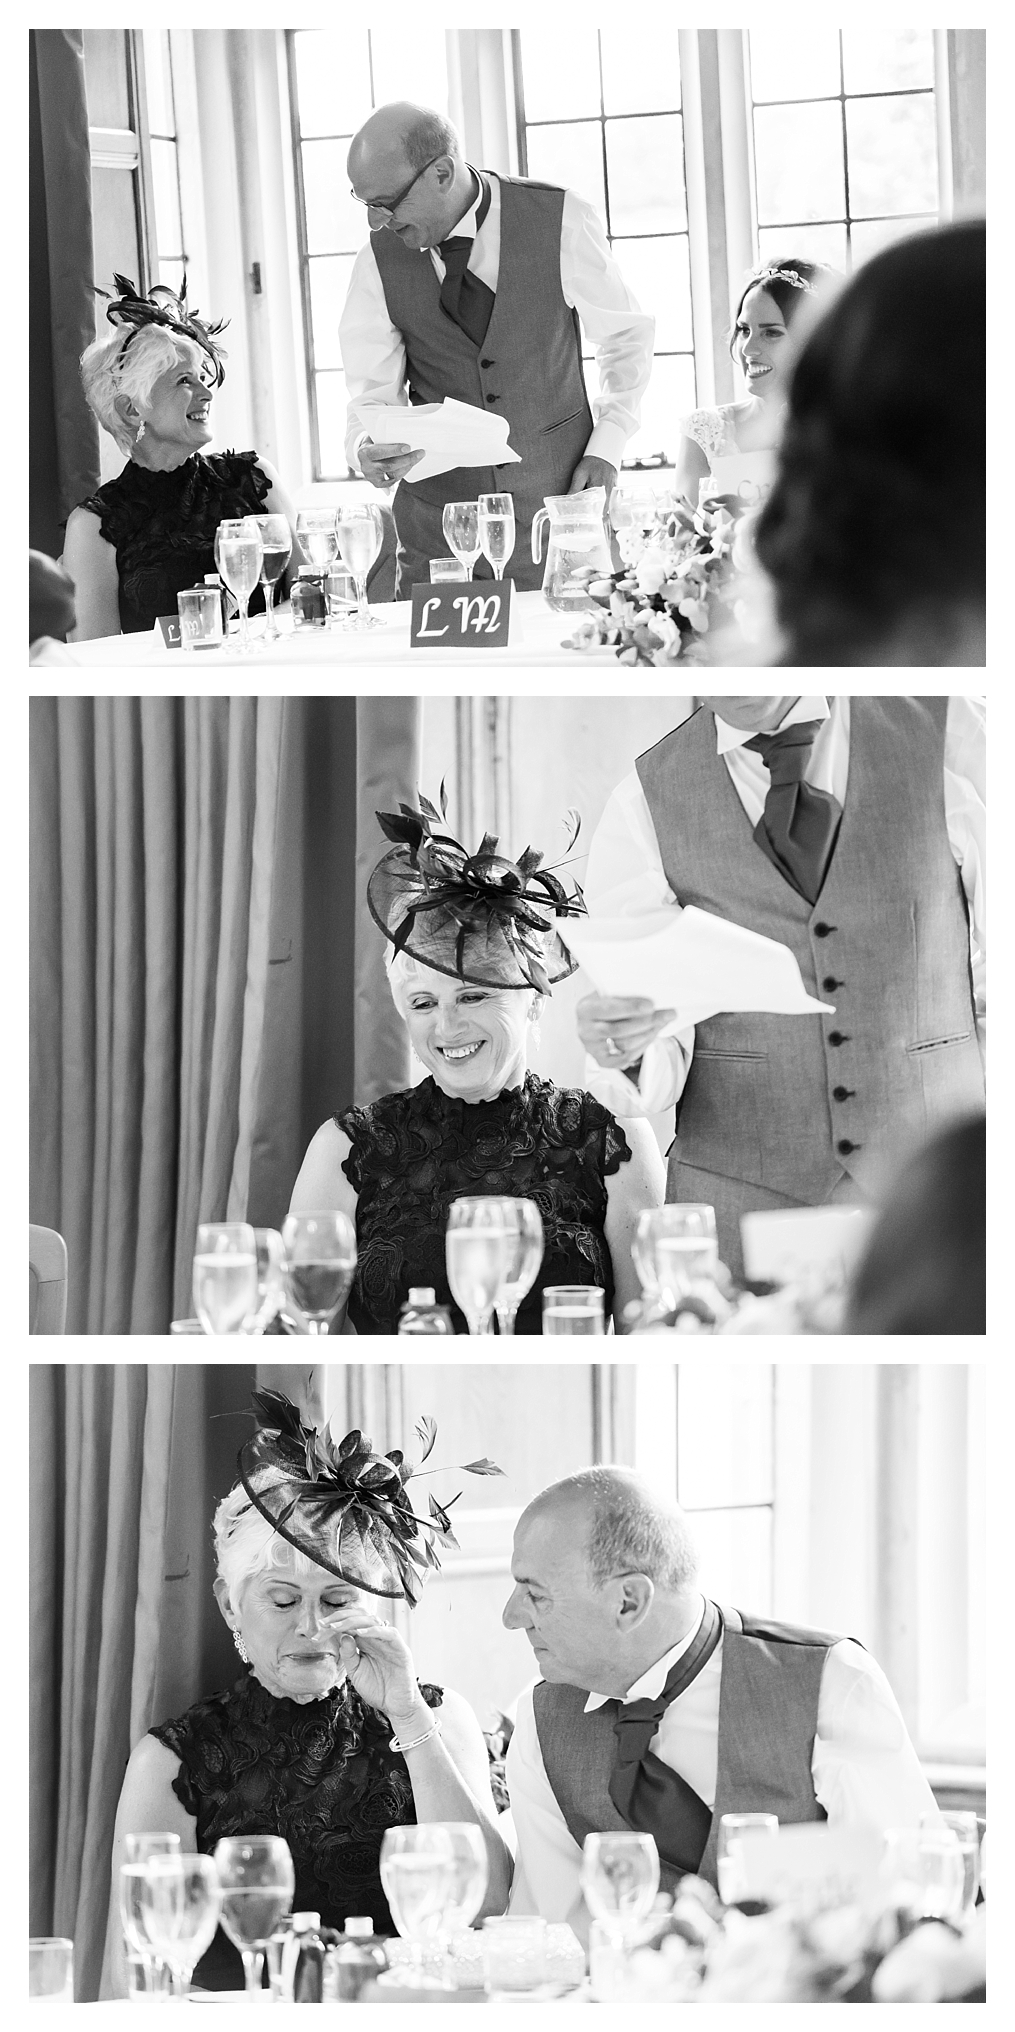 Matt & Laura's Wedding - weddings - nkimphotogrphy com notting hill 0547